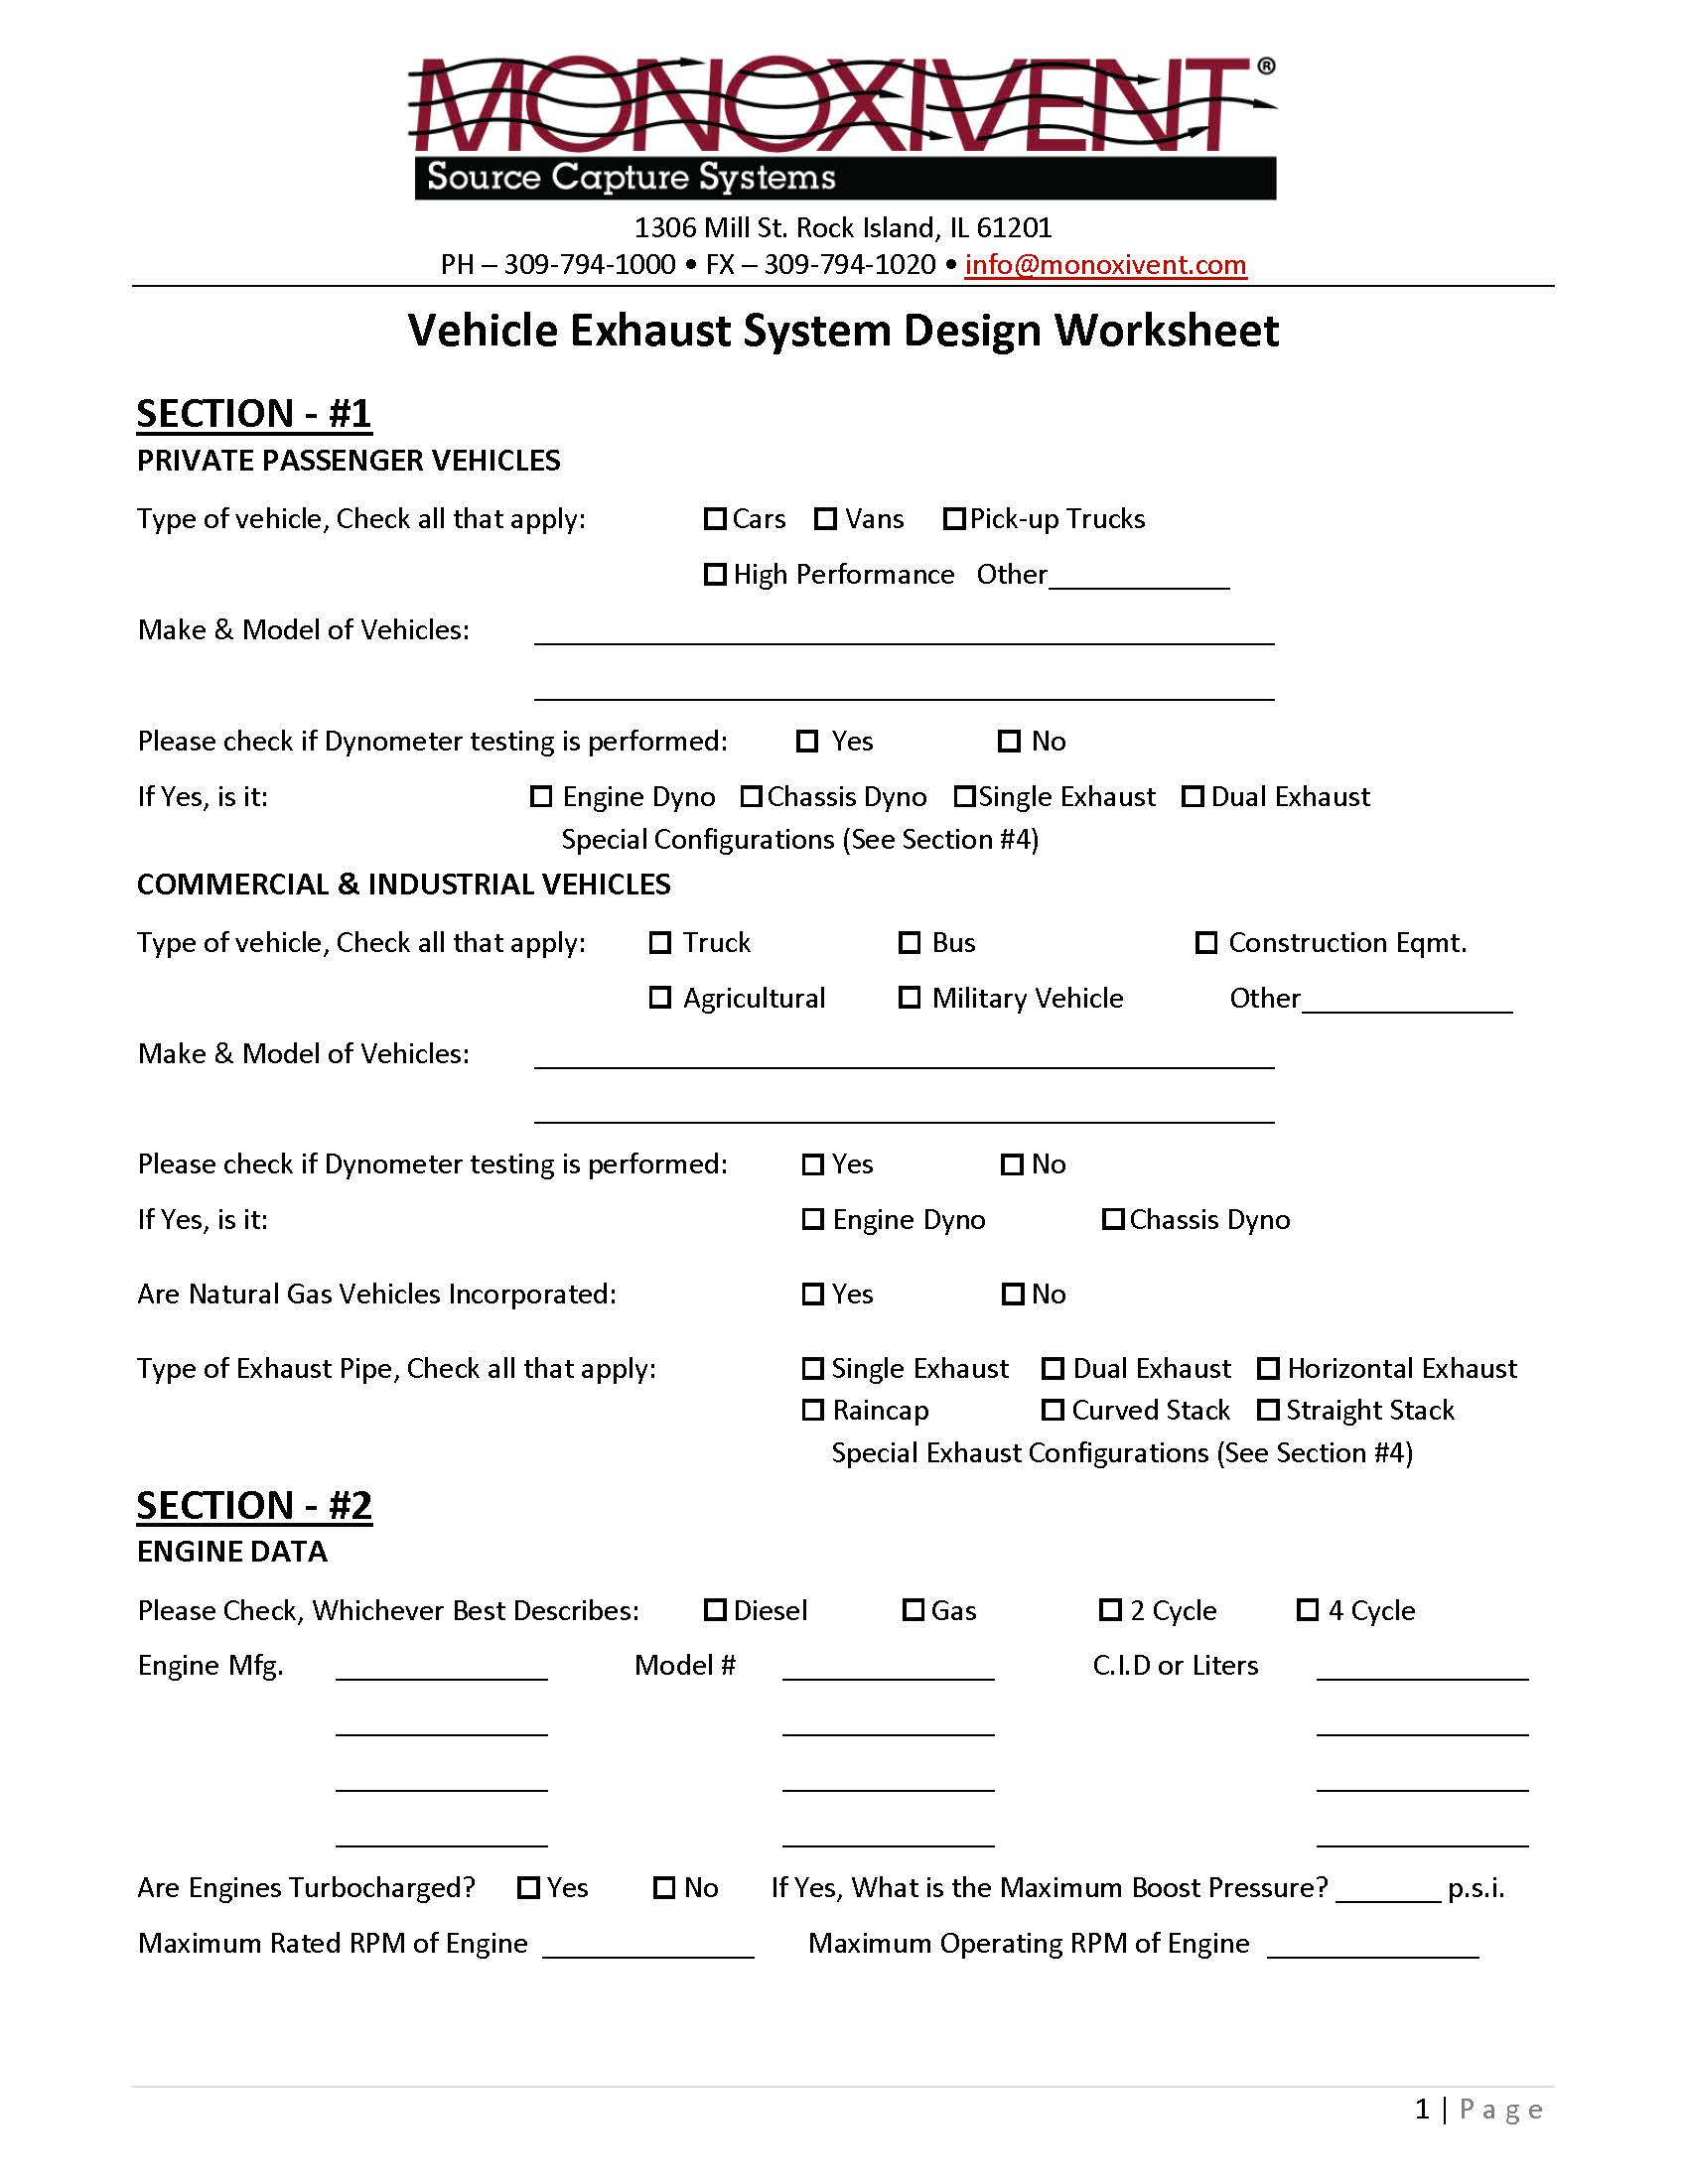 Vehicle Exhaust System Design Worksheet